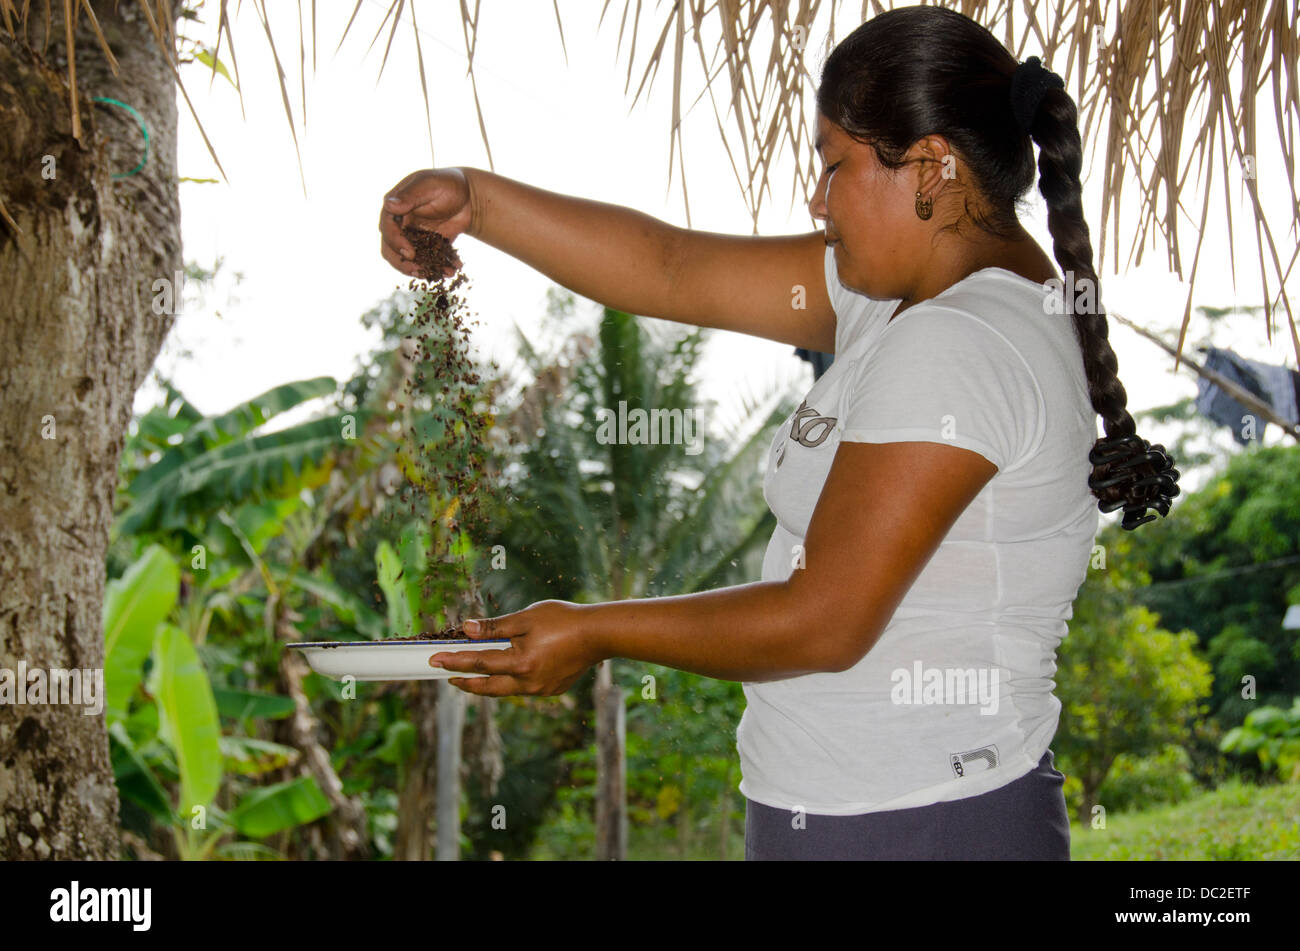 Belize, Punta Gorda, Agouti Cacao Farm. Plantation owner, Elandio Pop. Separating the coco husk from the roasted - Stock Image